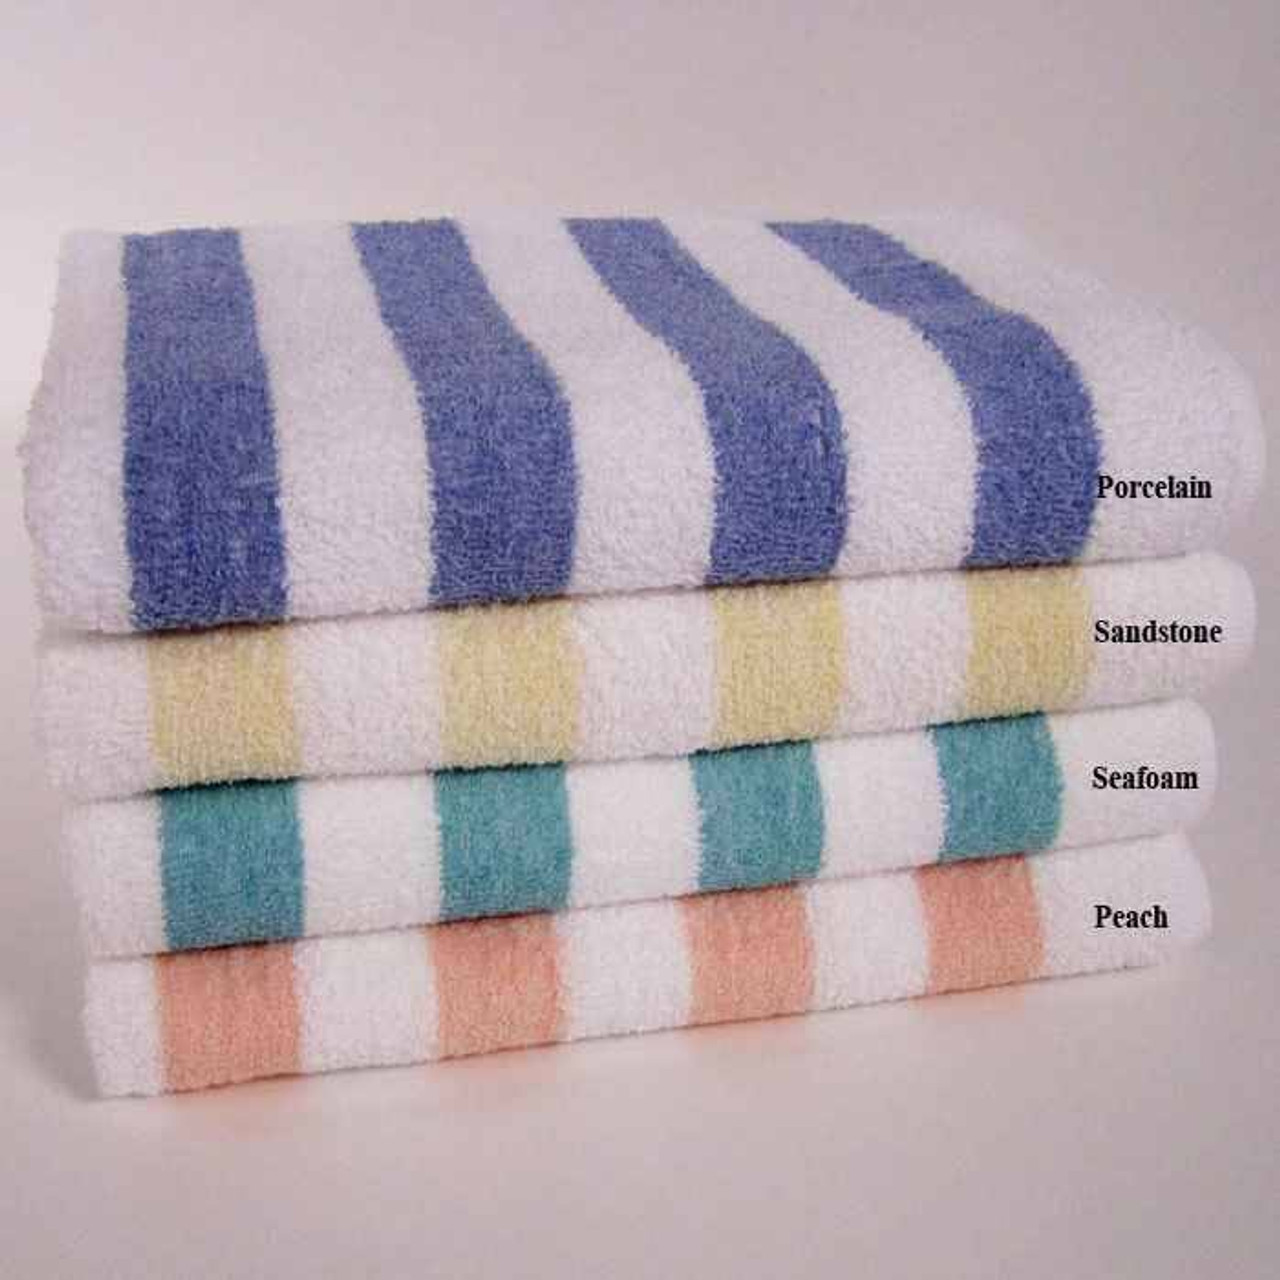 1888 Mills 1888 Mills Towels or Fibertone Classic Cabana Striped Beach Towels